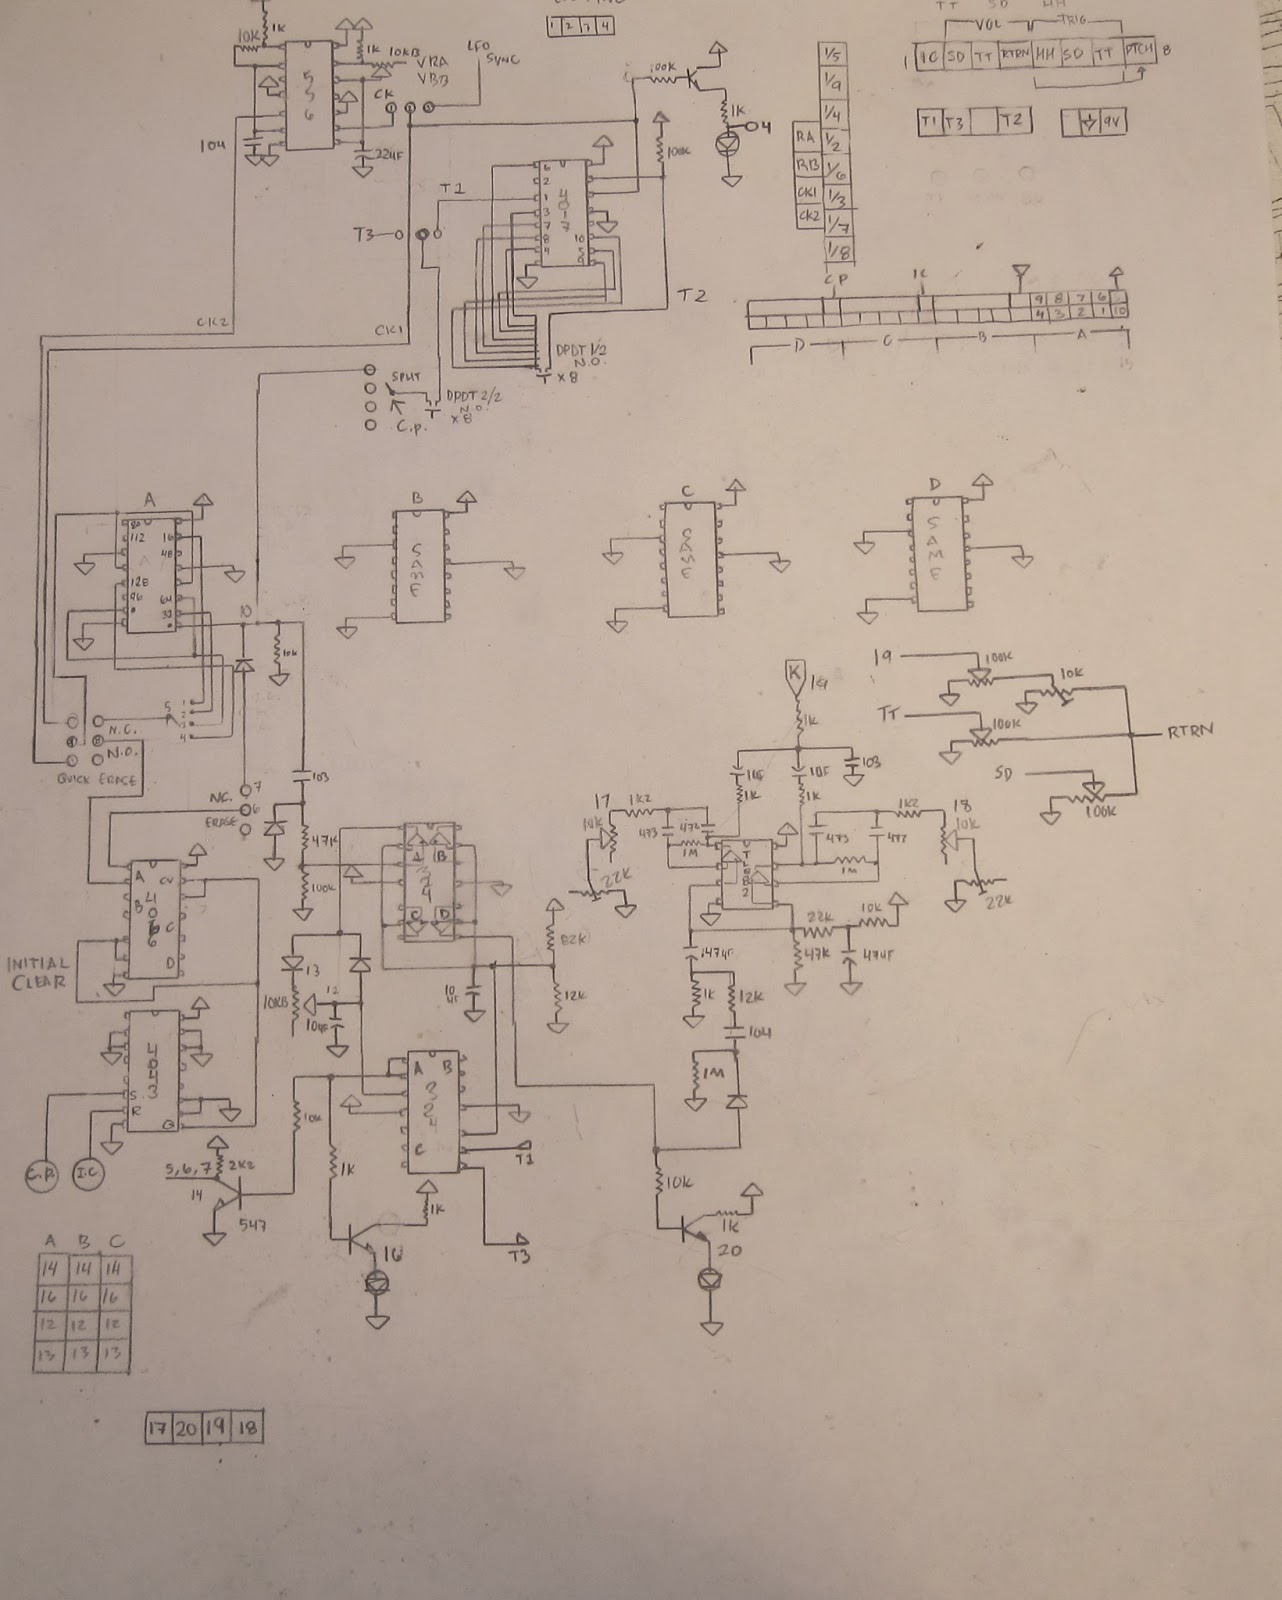 Noystoise2018 Yamaha Ps 3 Holiday Lighting Sequencer Circuit Diagram Super The Came Equipped With Nine Timbres Most Of Which Are Same Sound Through A Different Combination Vcf And Vca Envelopes There Then Two